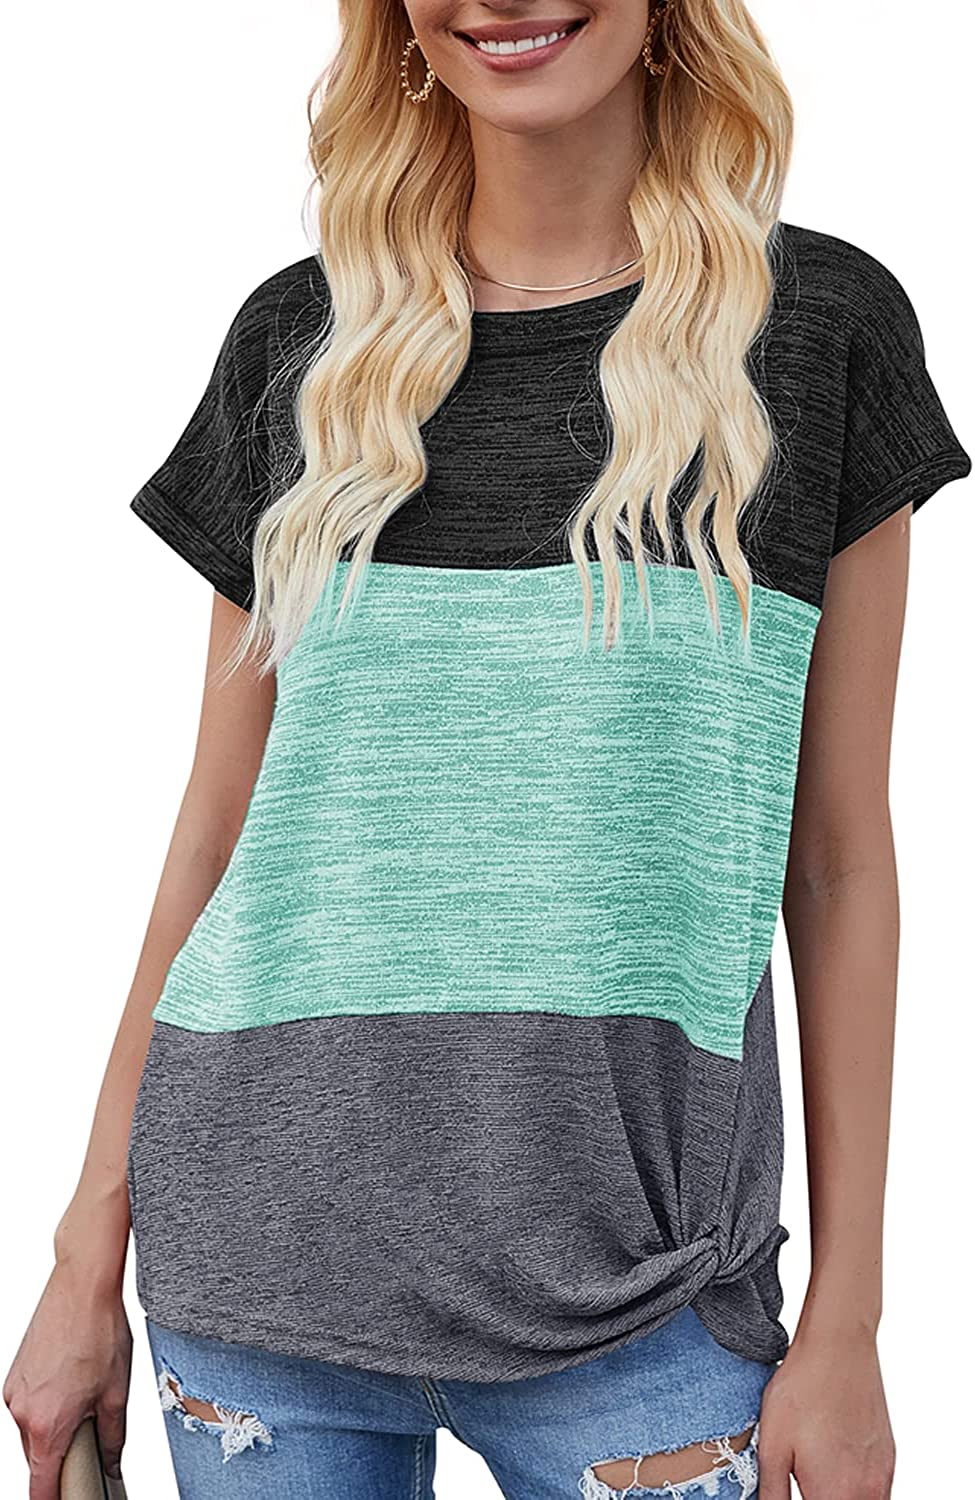 Women Tops Color Block Twist Knotted Tee Shirts Fashion Basic Striped Blouse Tunic Tops